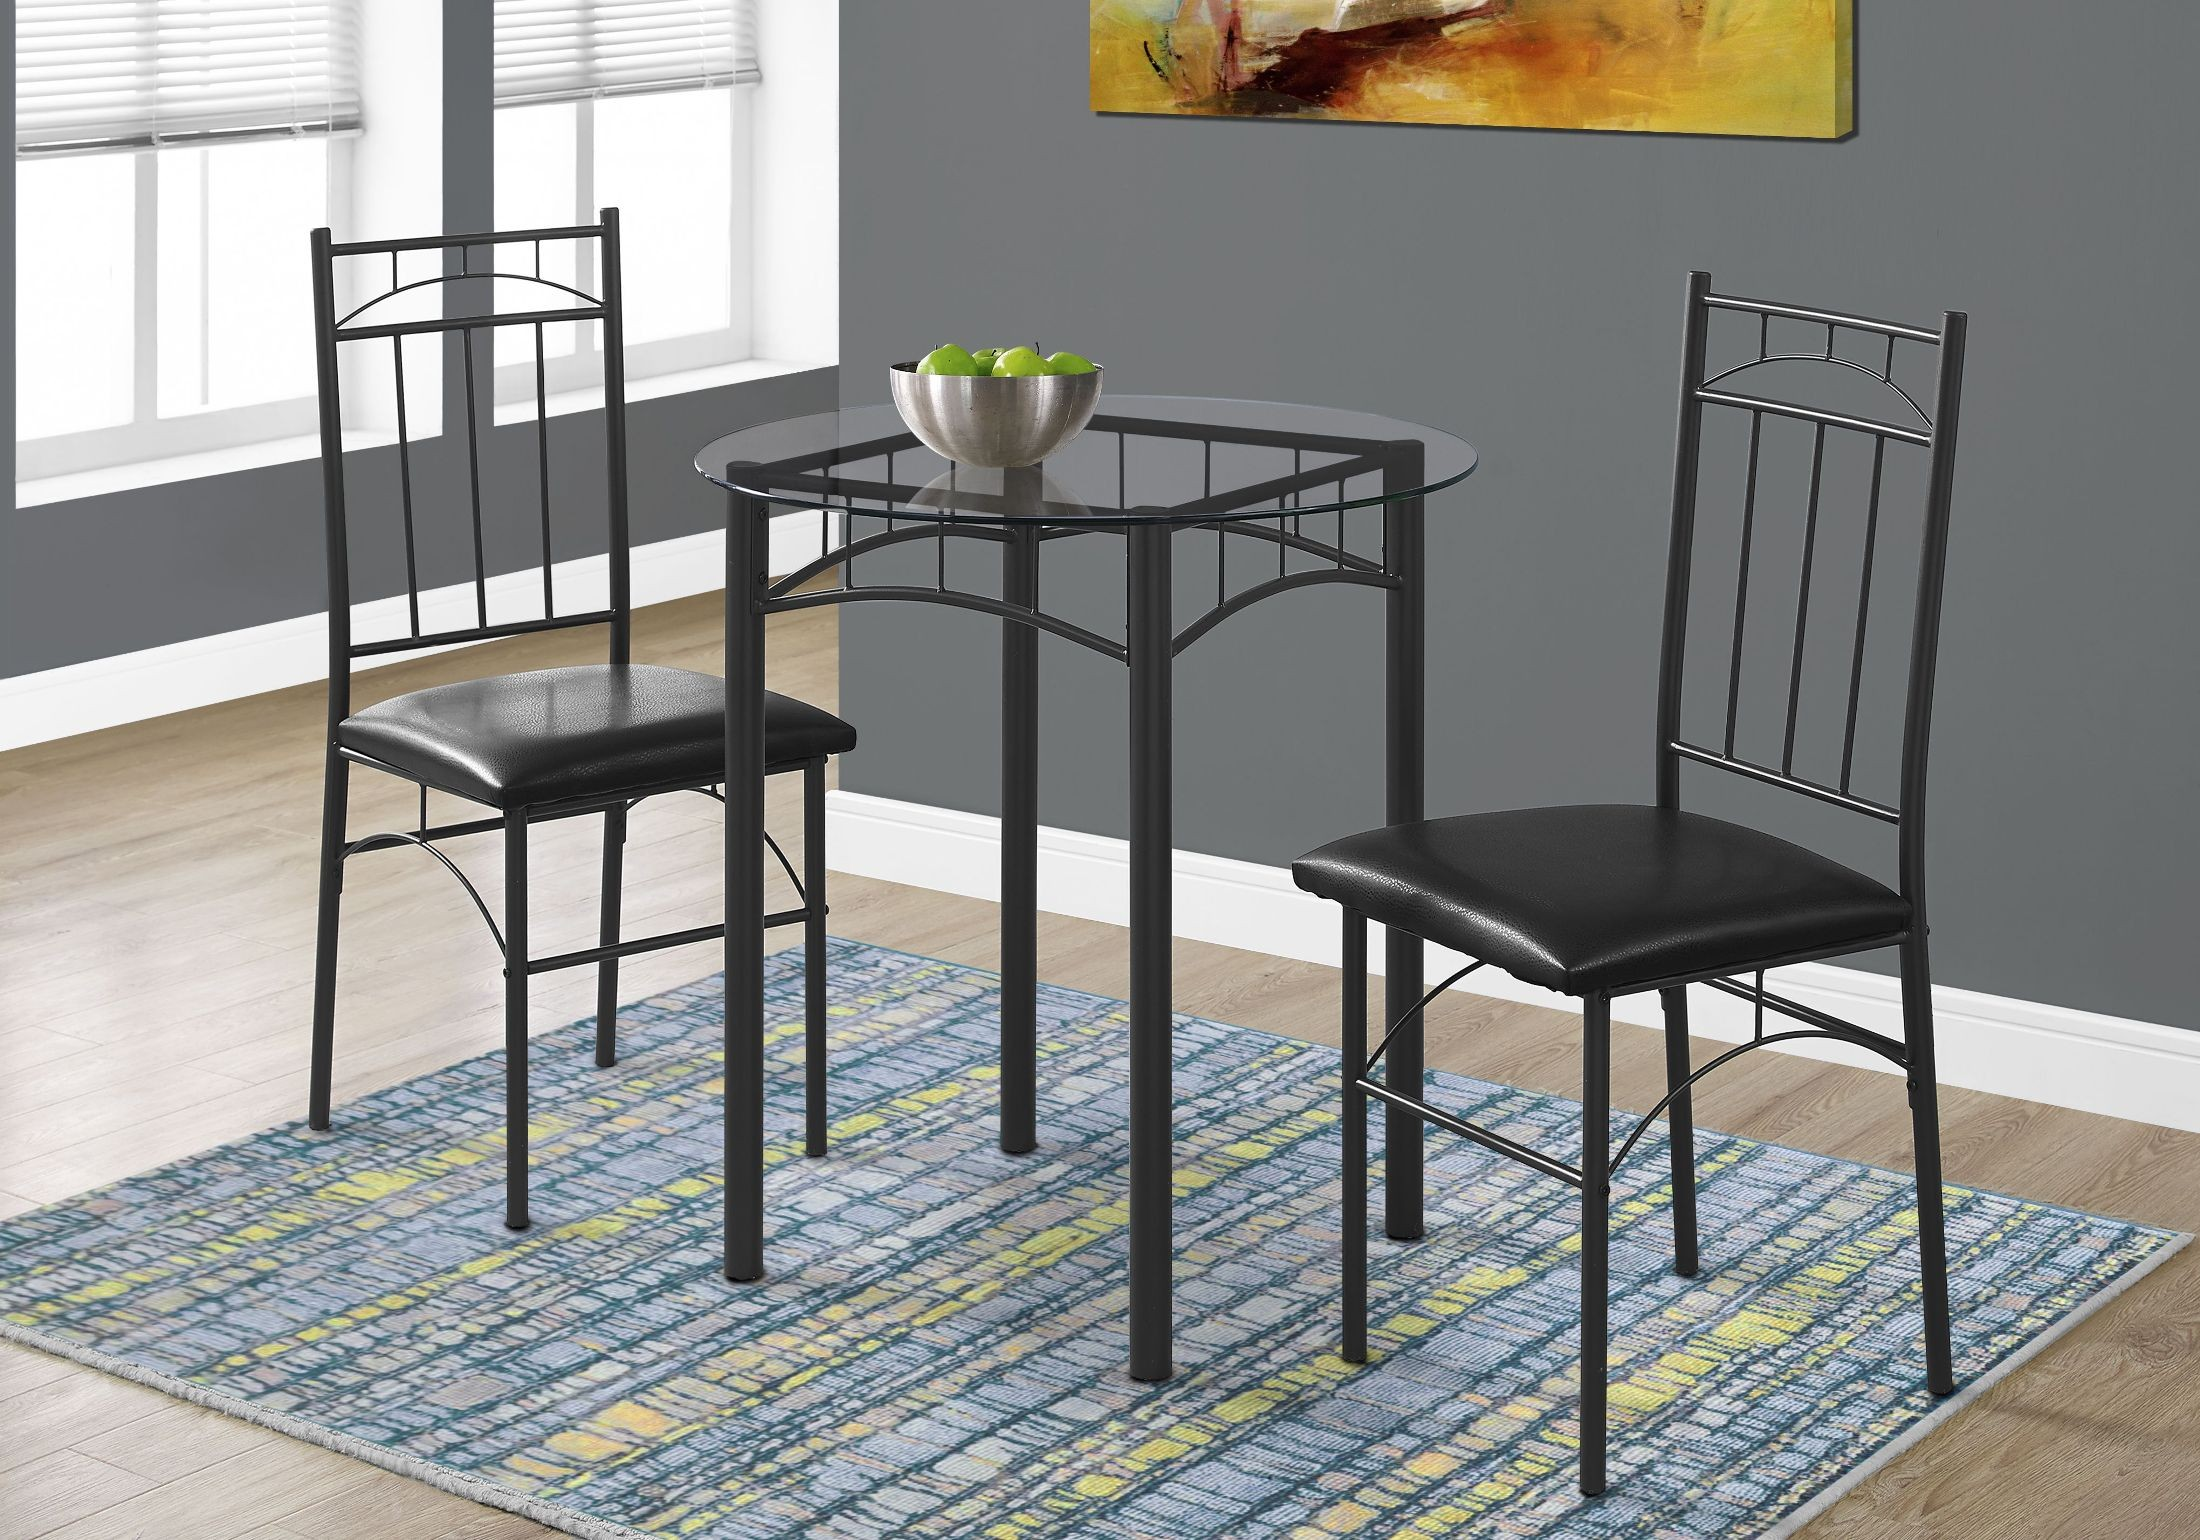 Black Metal and Glass 3 Piece Dining Room Set from Monarch